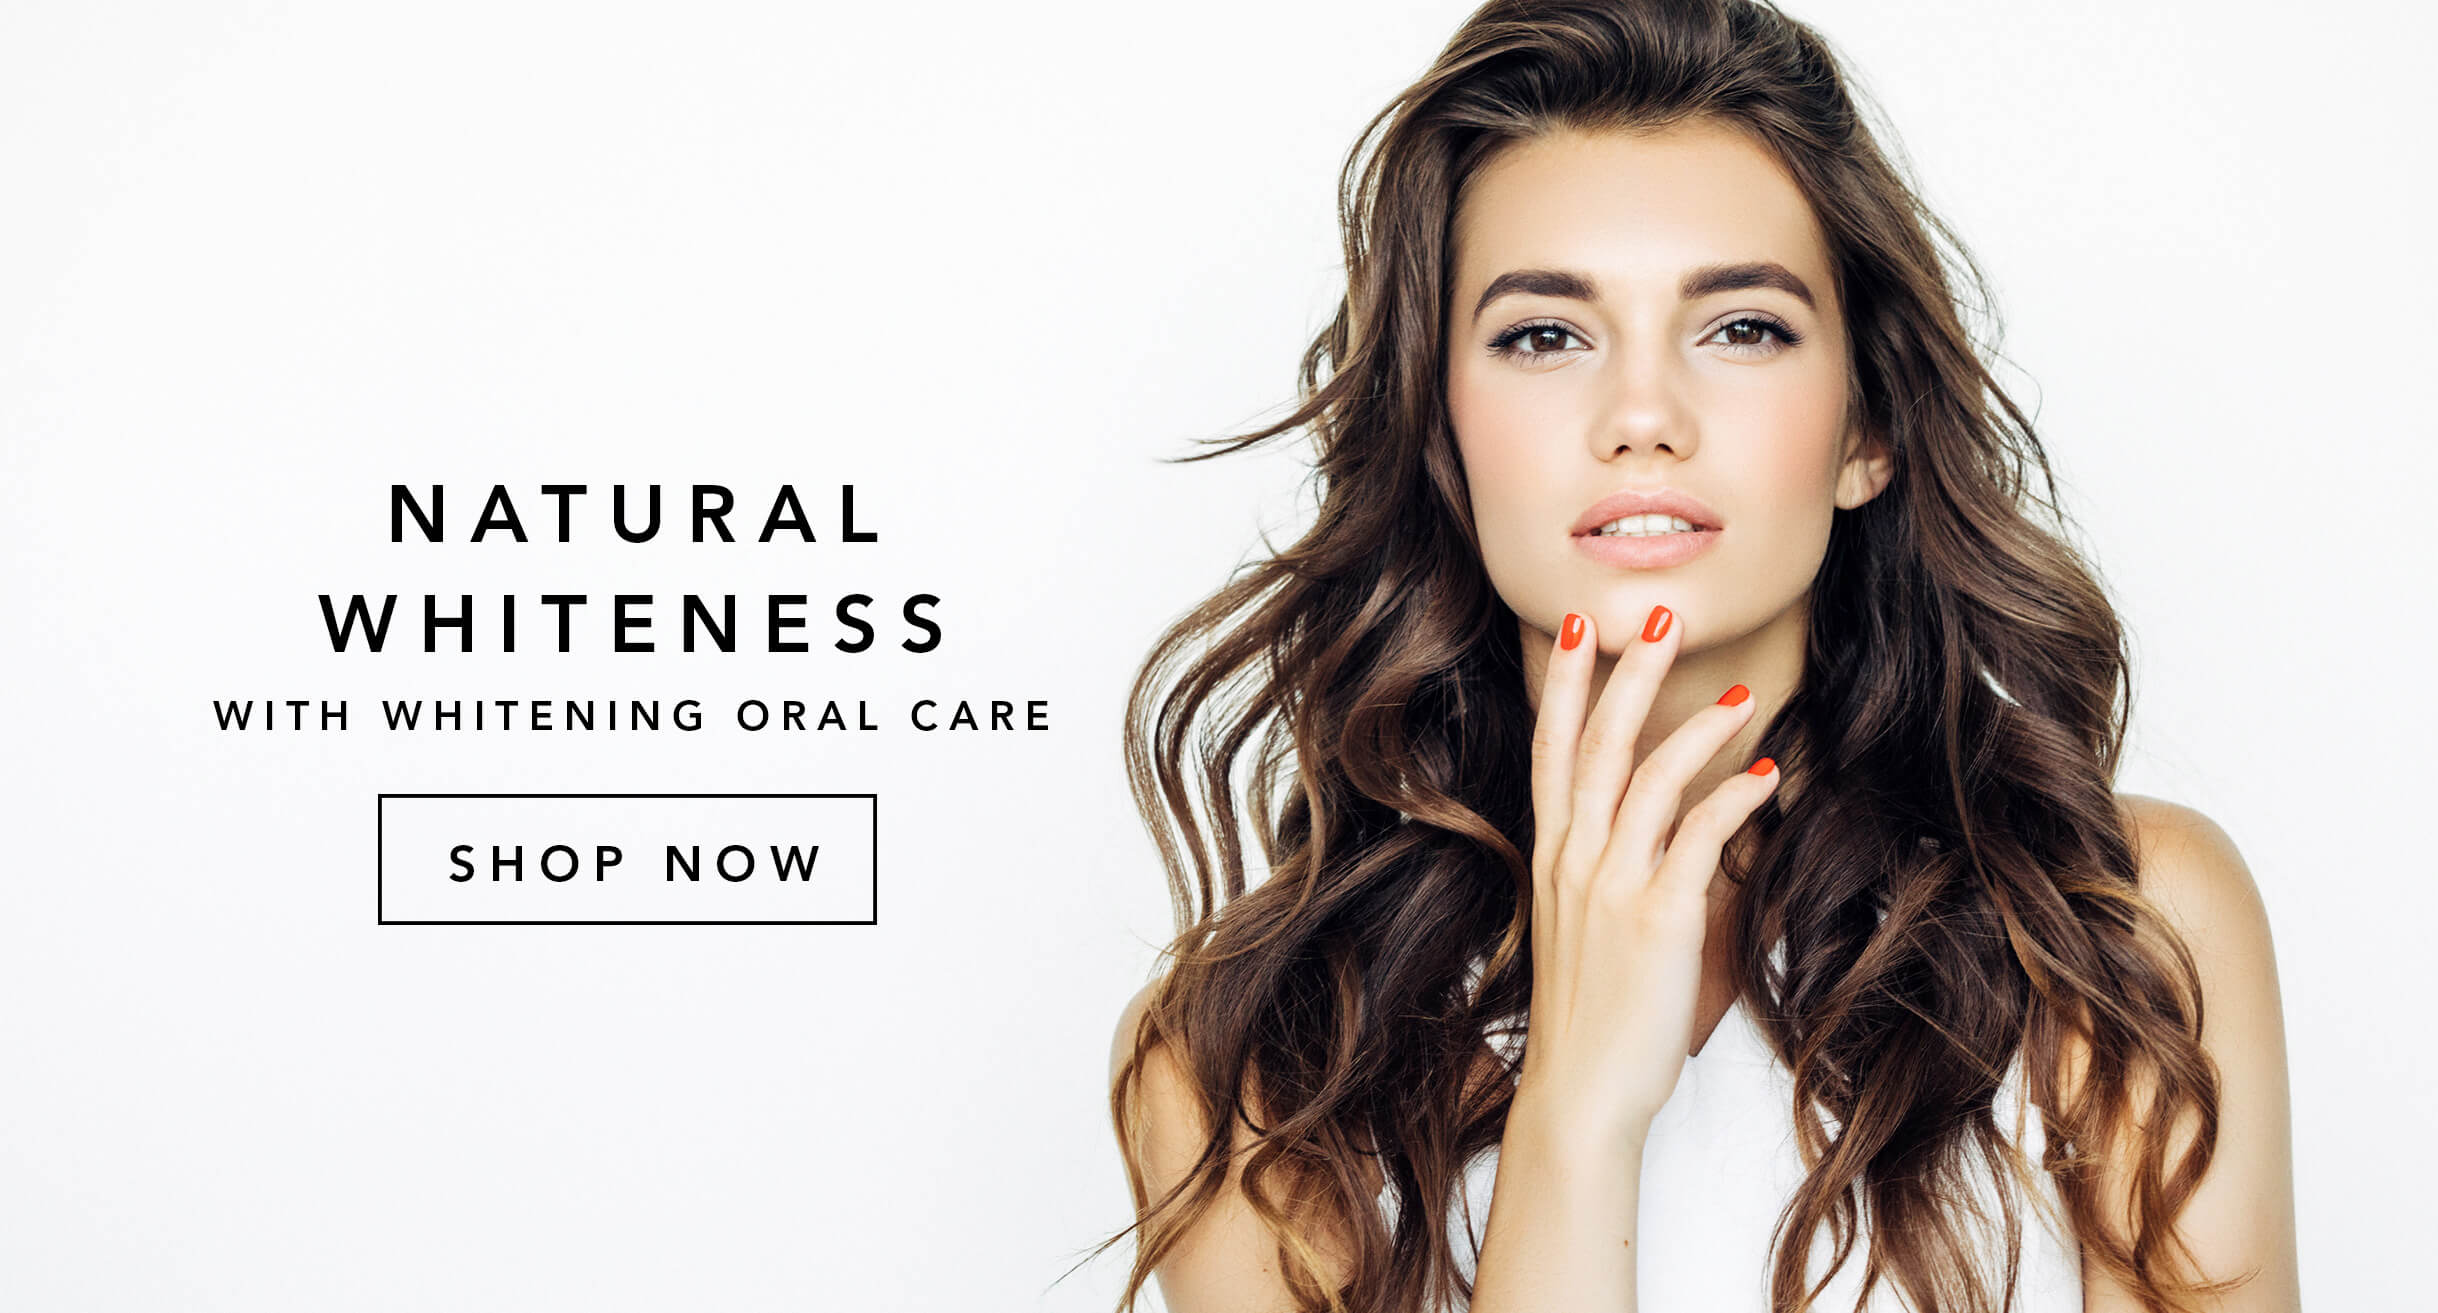 Natural whiteness with Whitening Oral Care